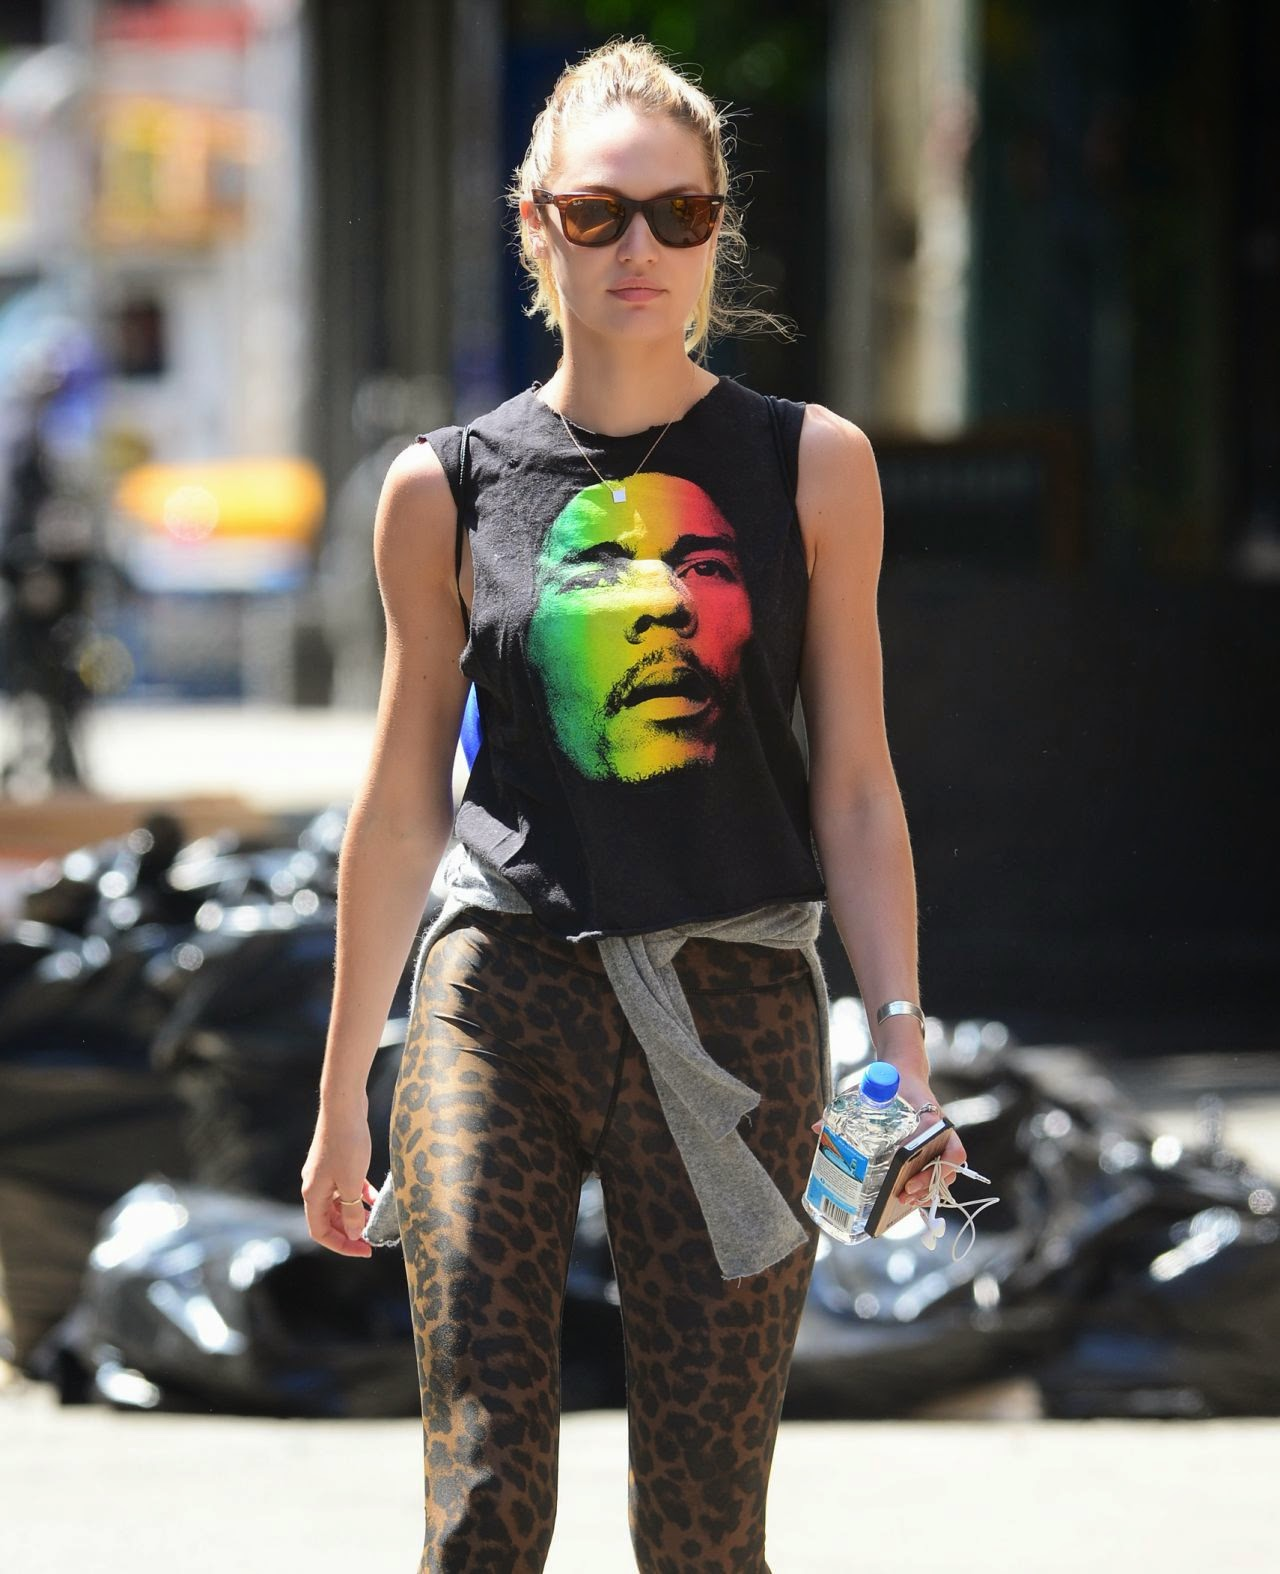 Candice Swanepoel in leopard print leggings and Bob Marley shirt in NYC